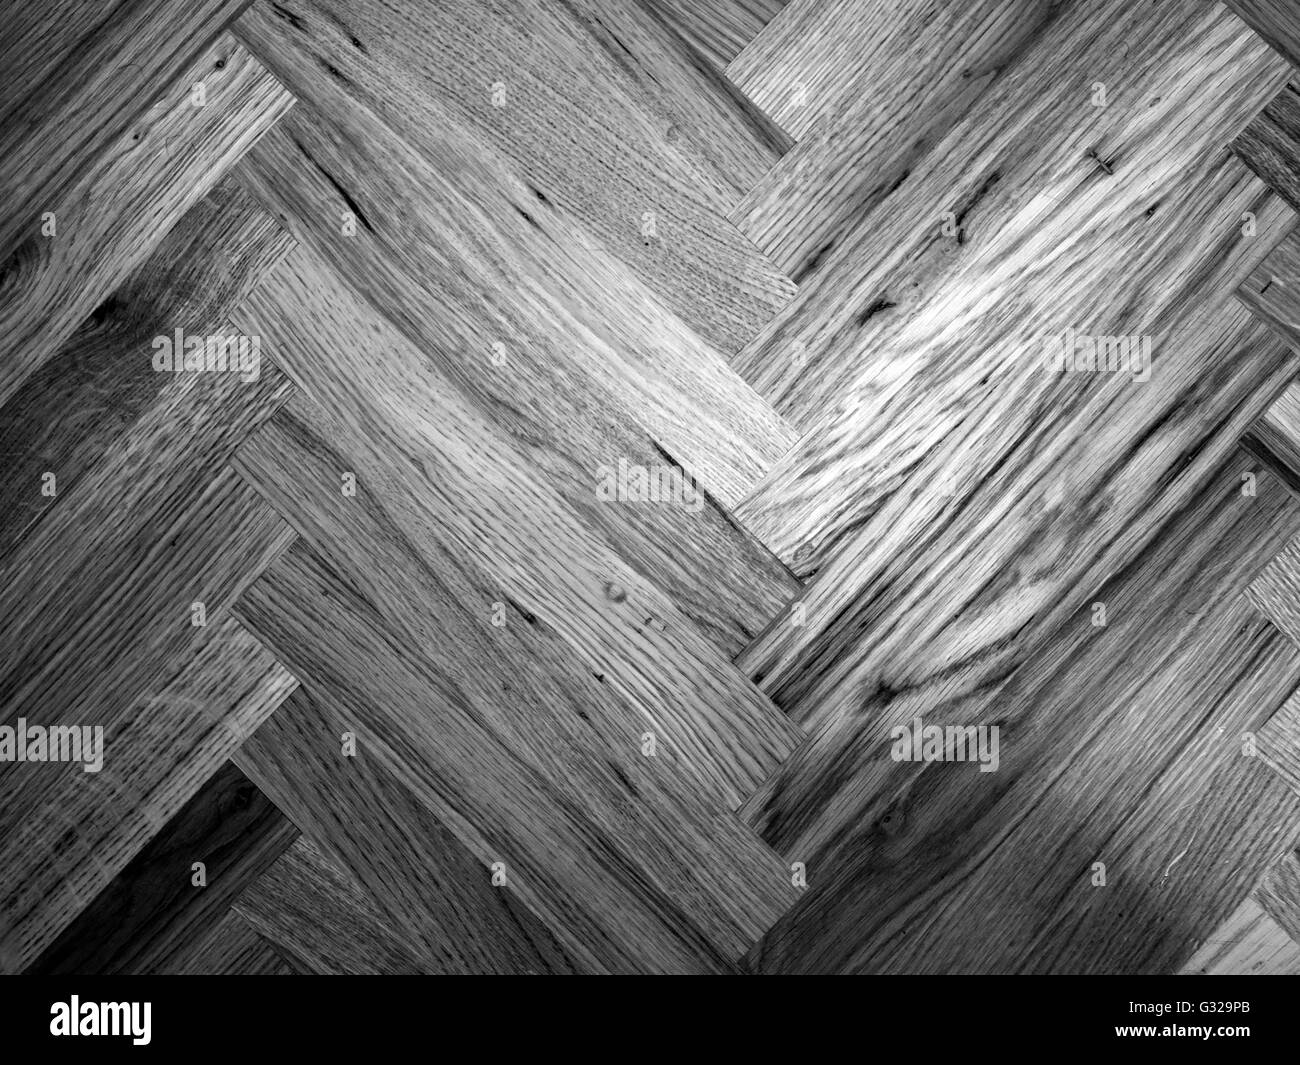 Seamless Oak laminate parquet floor texture background in black and white - Stock Image